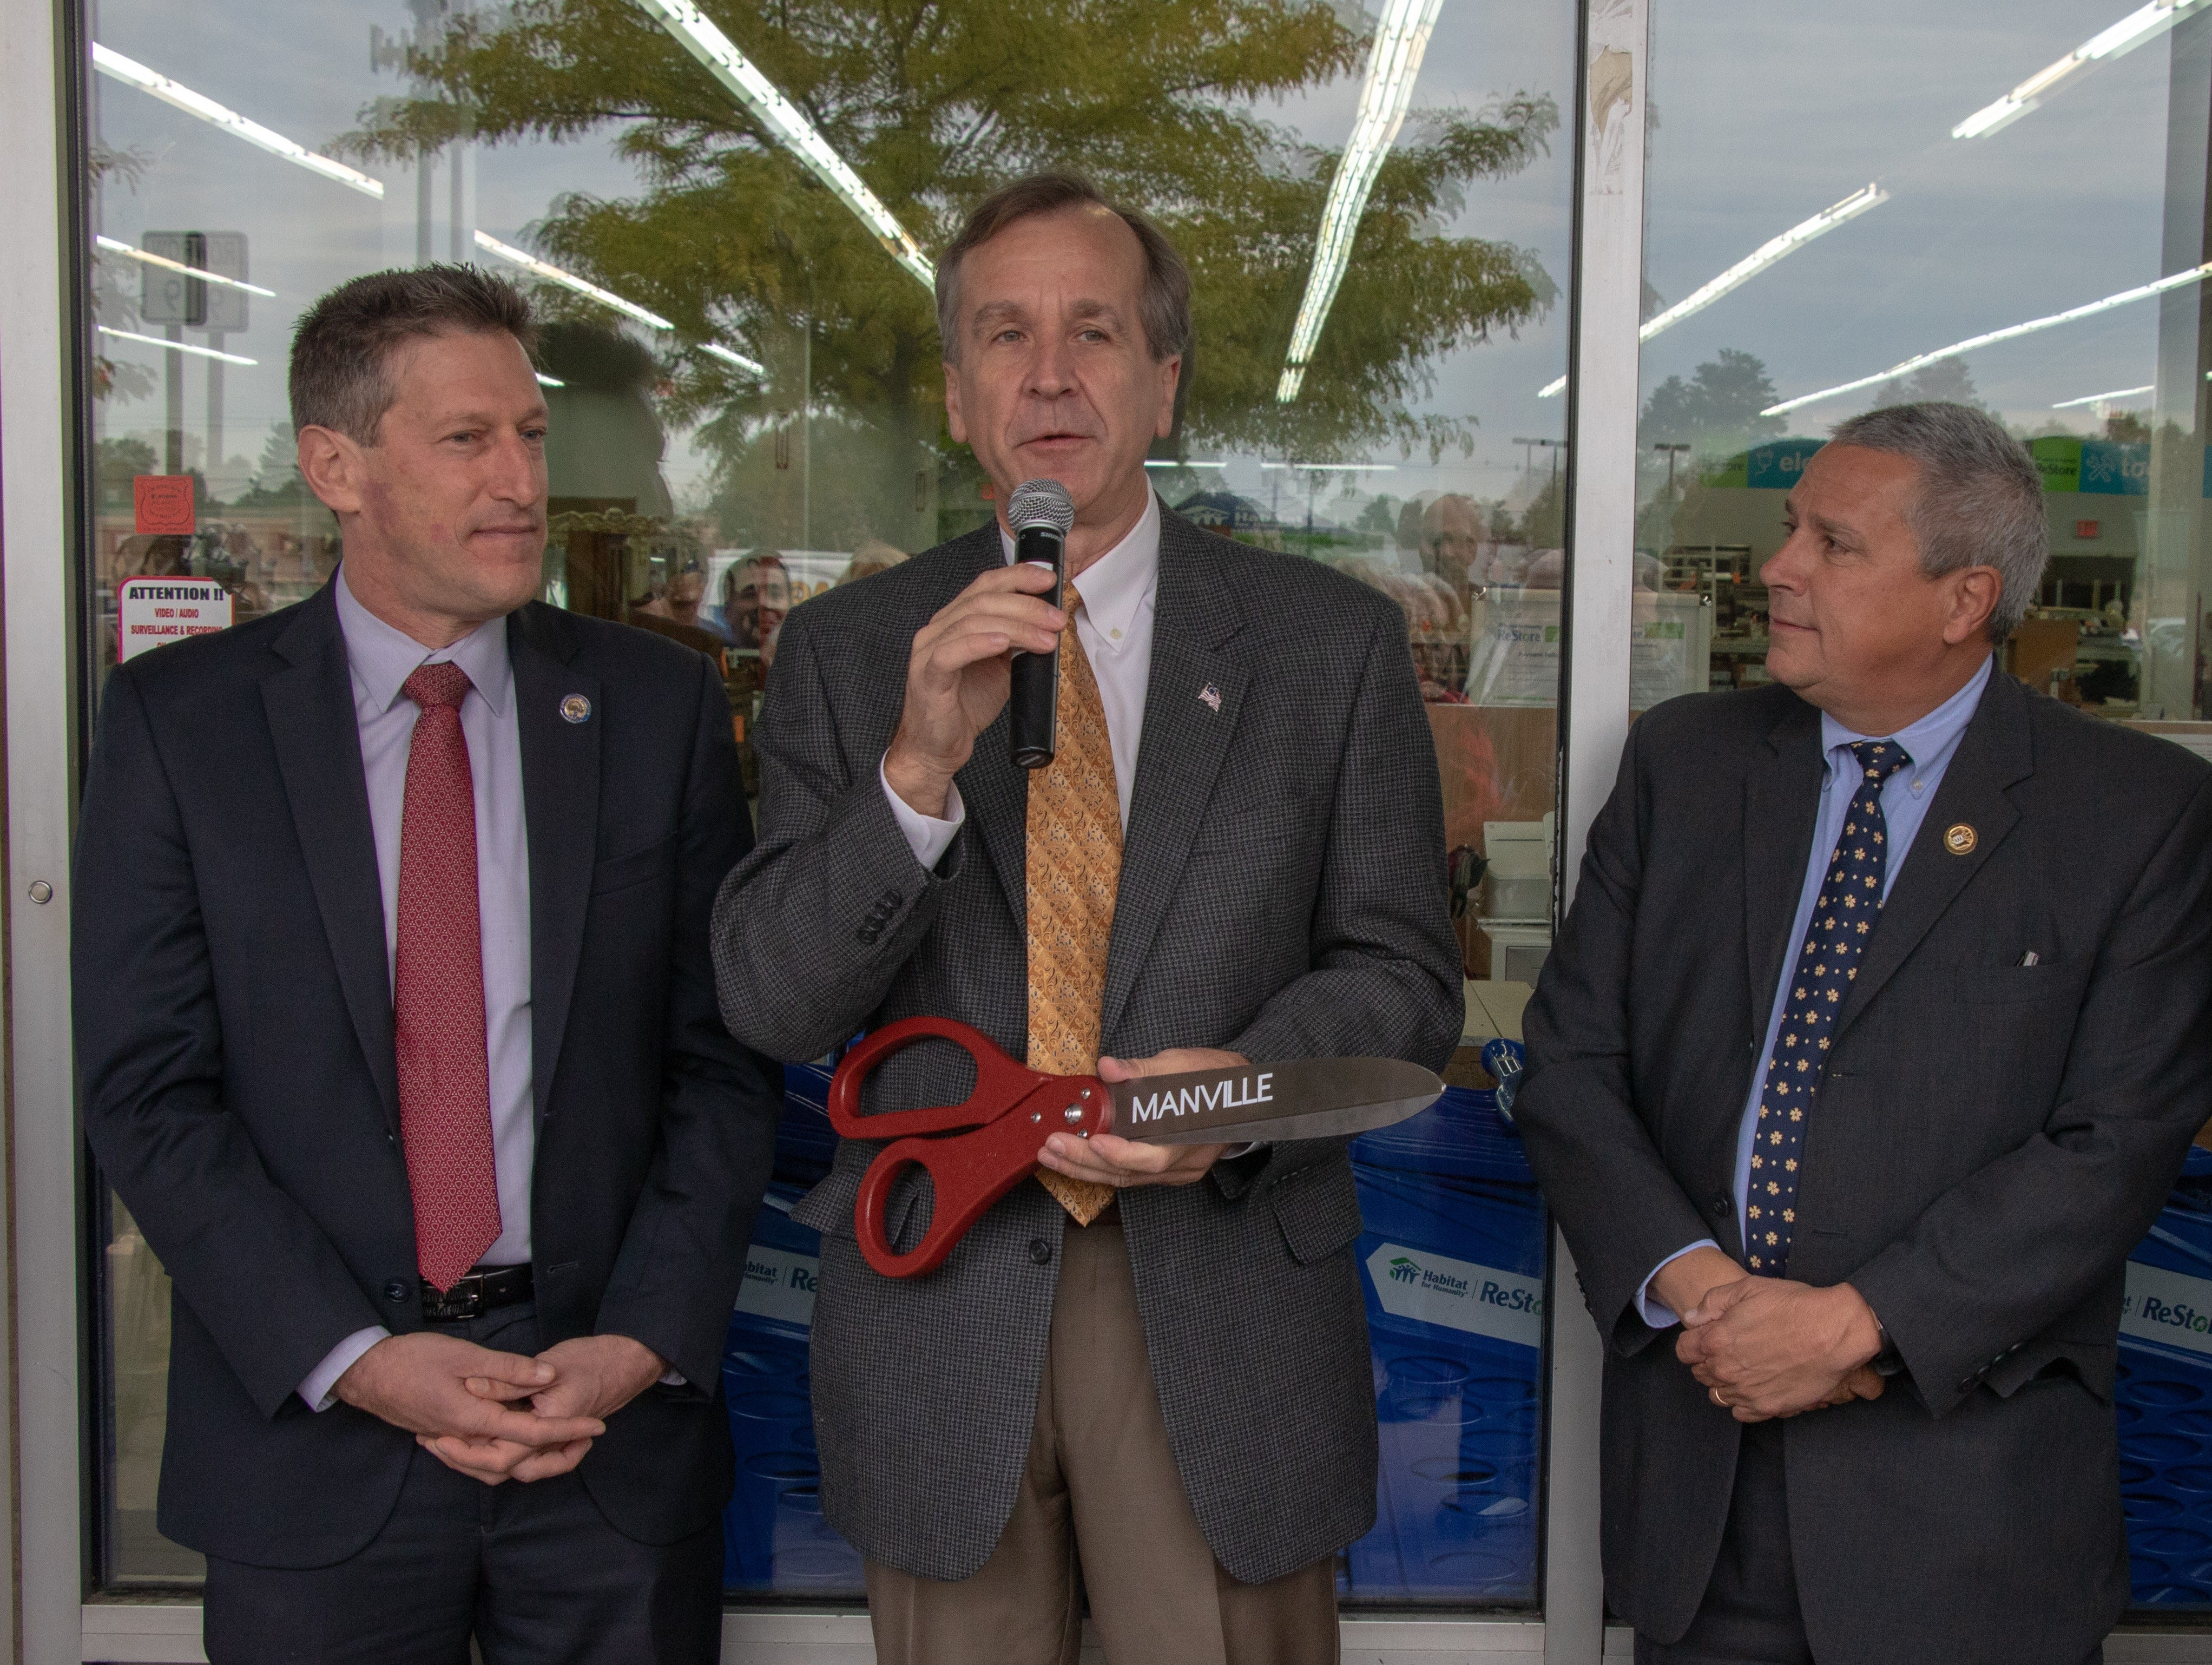 Manville Mayor, Richard Onderko, talks to the crowd at the opening of the new Habitat ReStore in Manville on Oct. 26 at 10 a.m., with Assemblyman Andrew Zwicker to the left and Senator Kip Bateman to the right of Mayor Onderko.